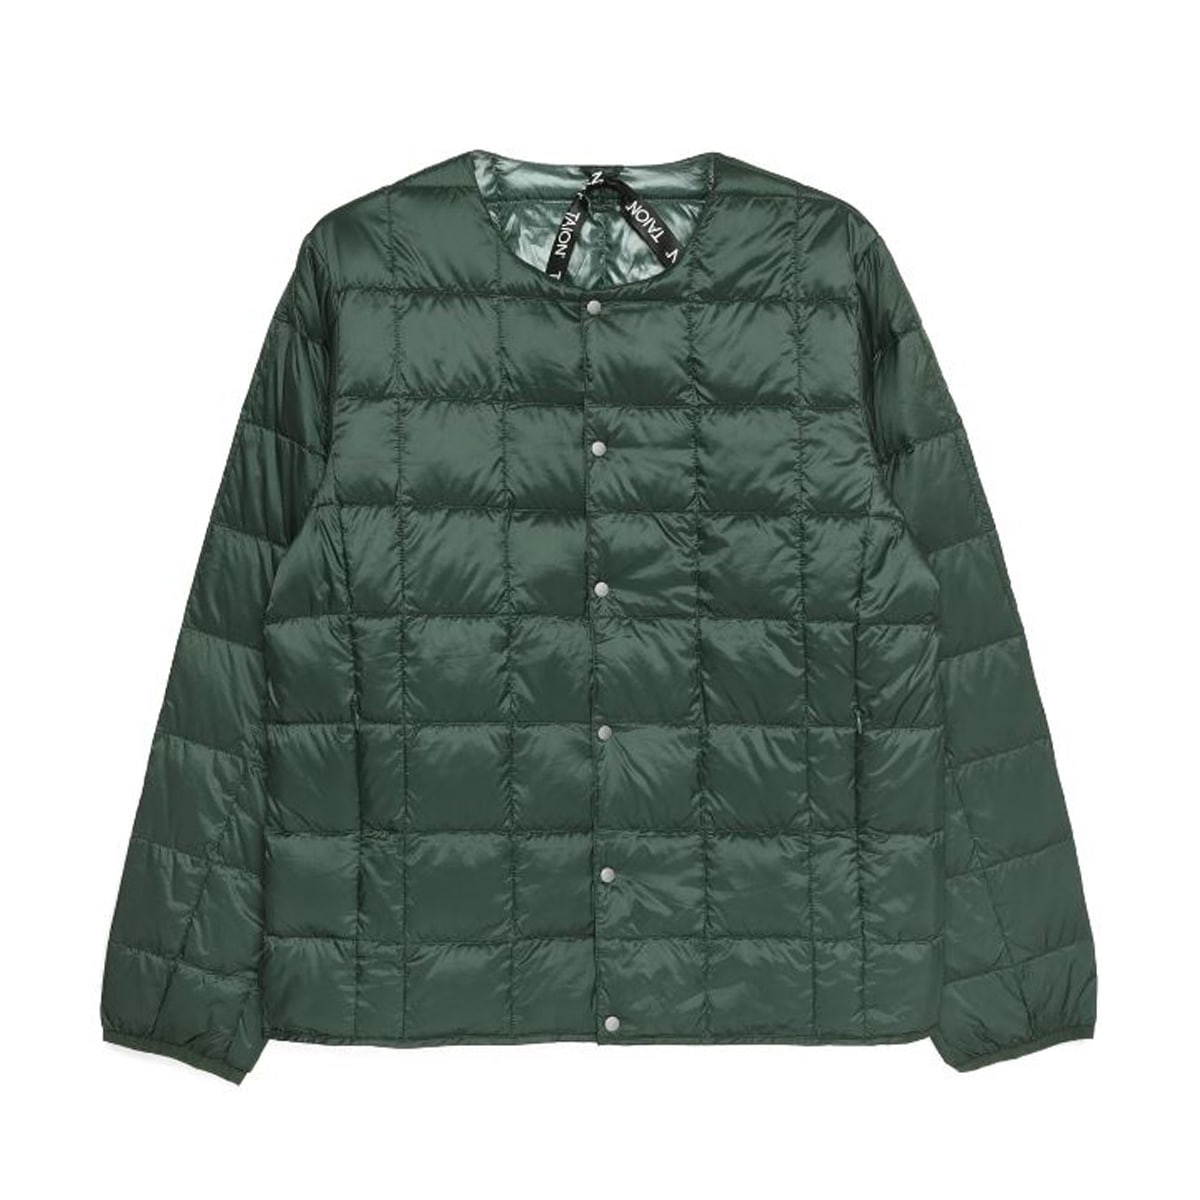 [TAION] CREW NECK BUTTON DOWN JACKET (TAION-104) 'GREEN'